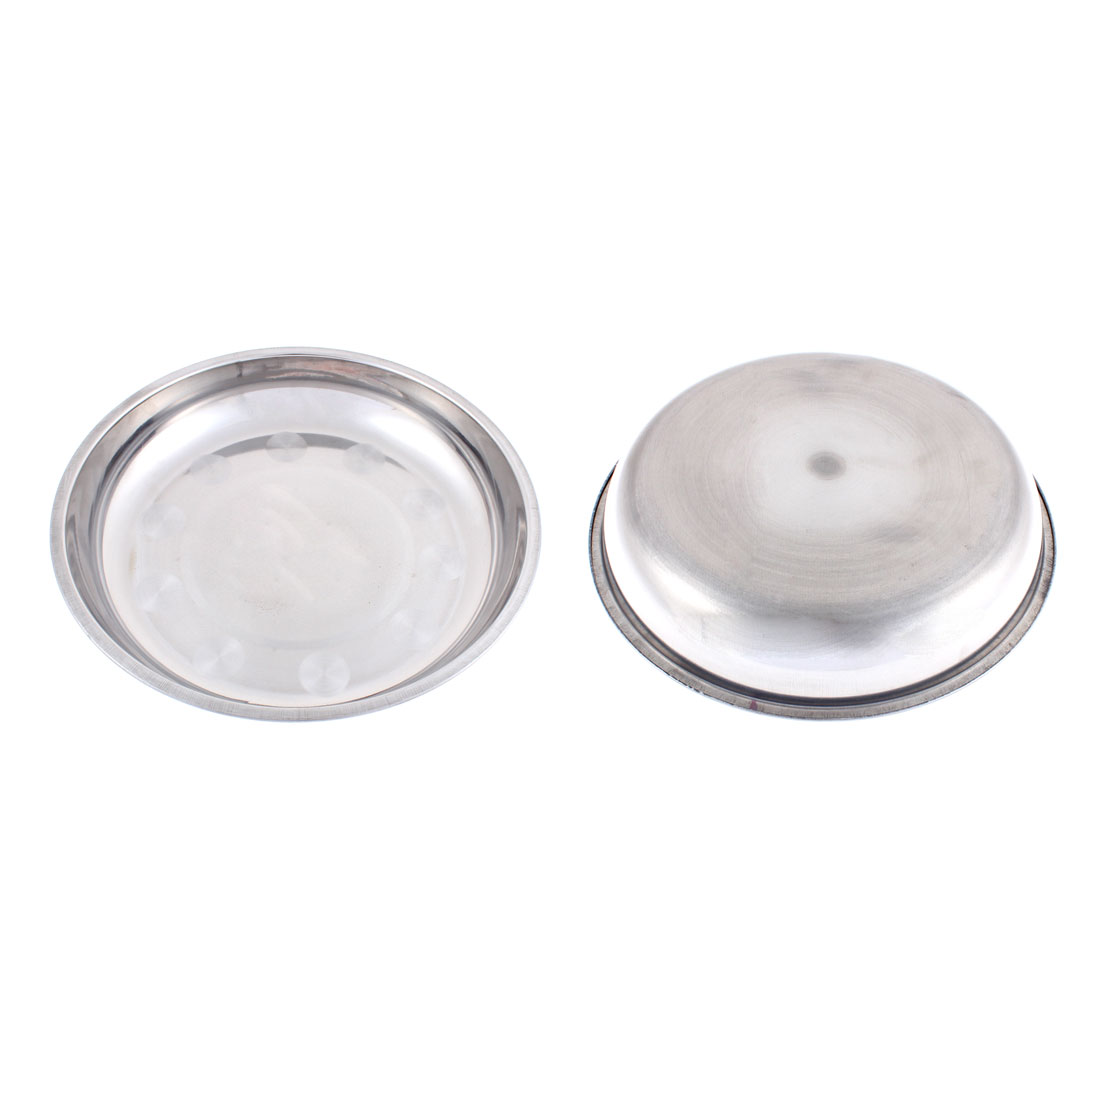 Round Shaped Dish Dinner Plate Holder Containers 24cm Dia 2Pcs